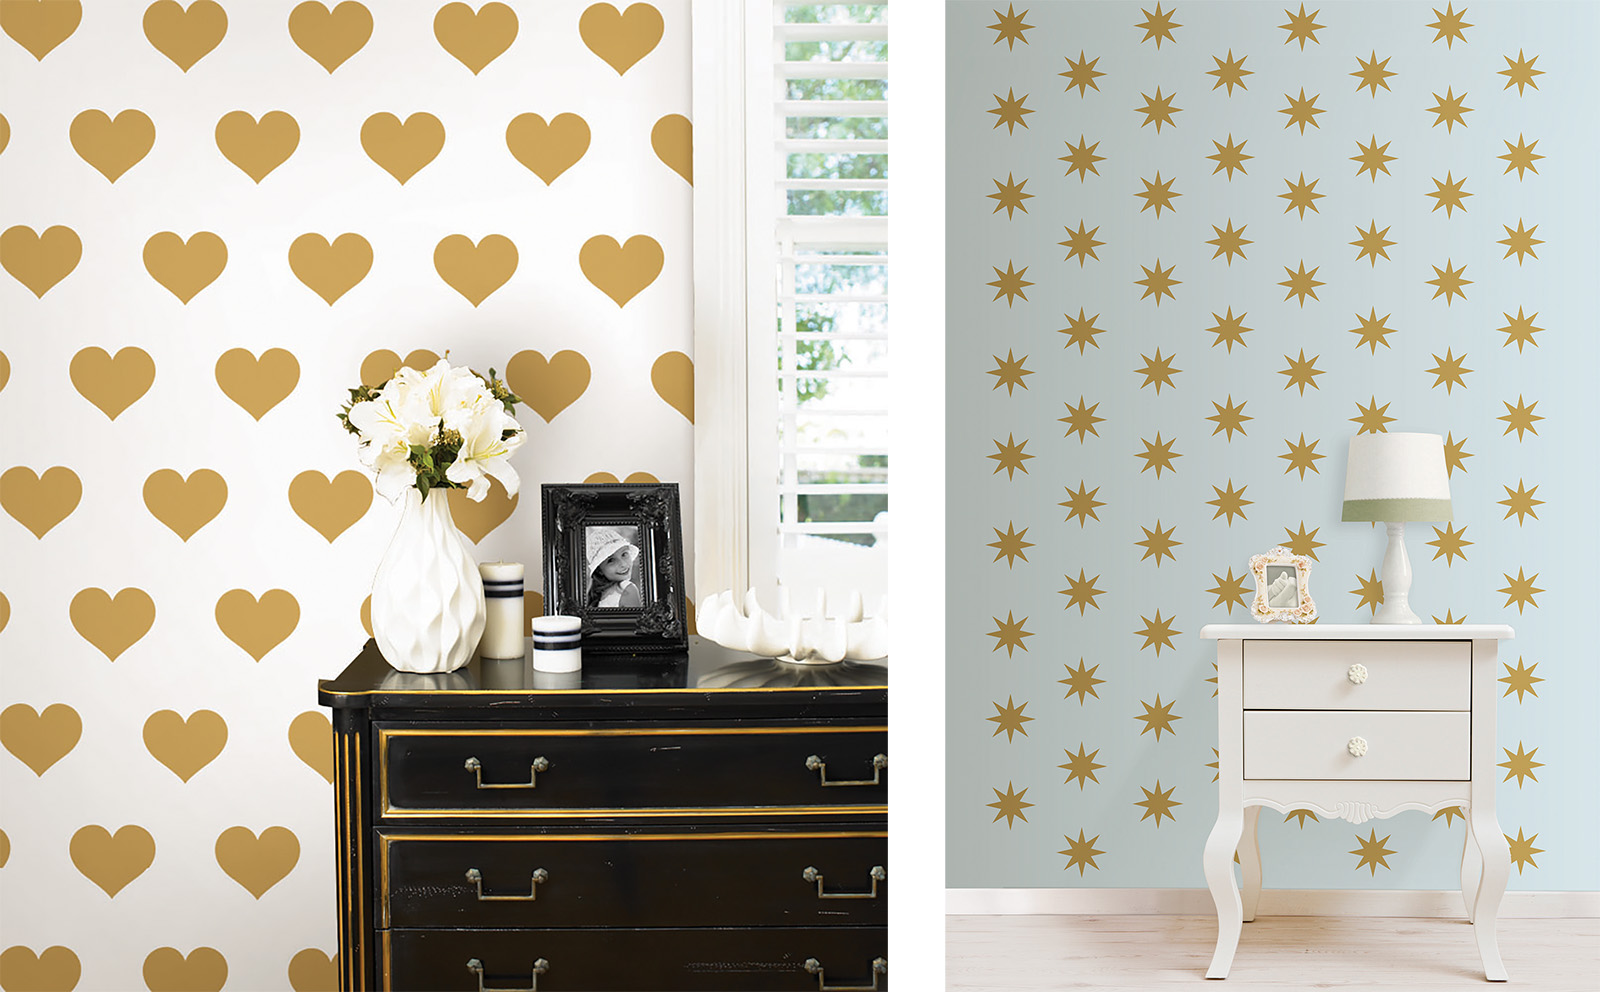 gold heart decals